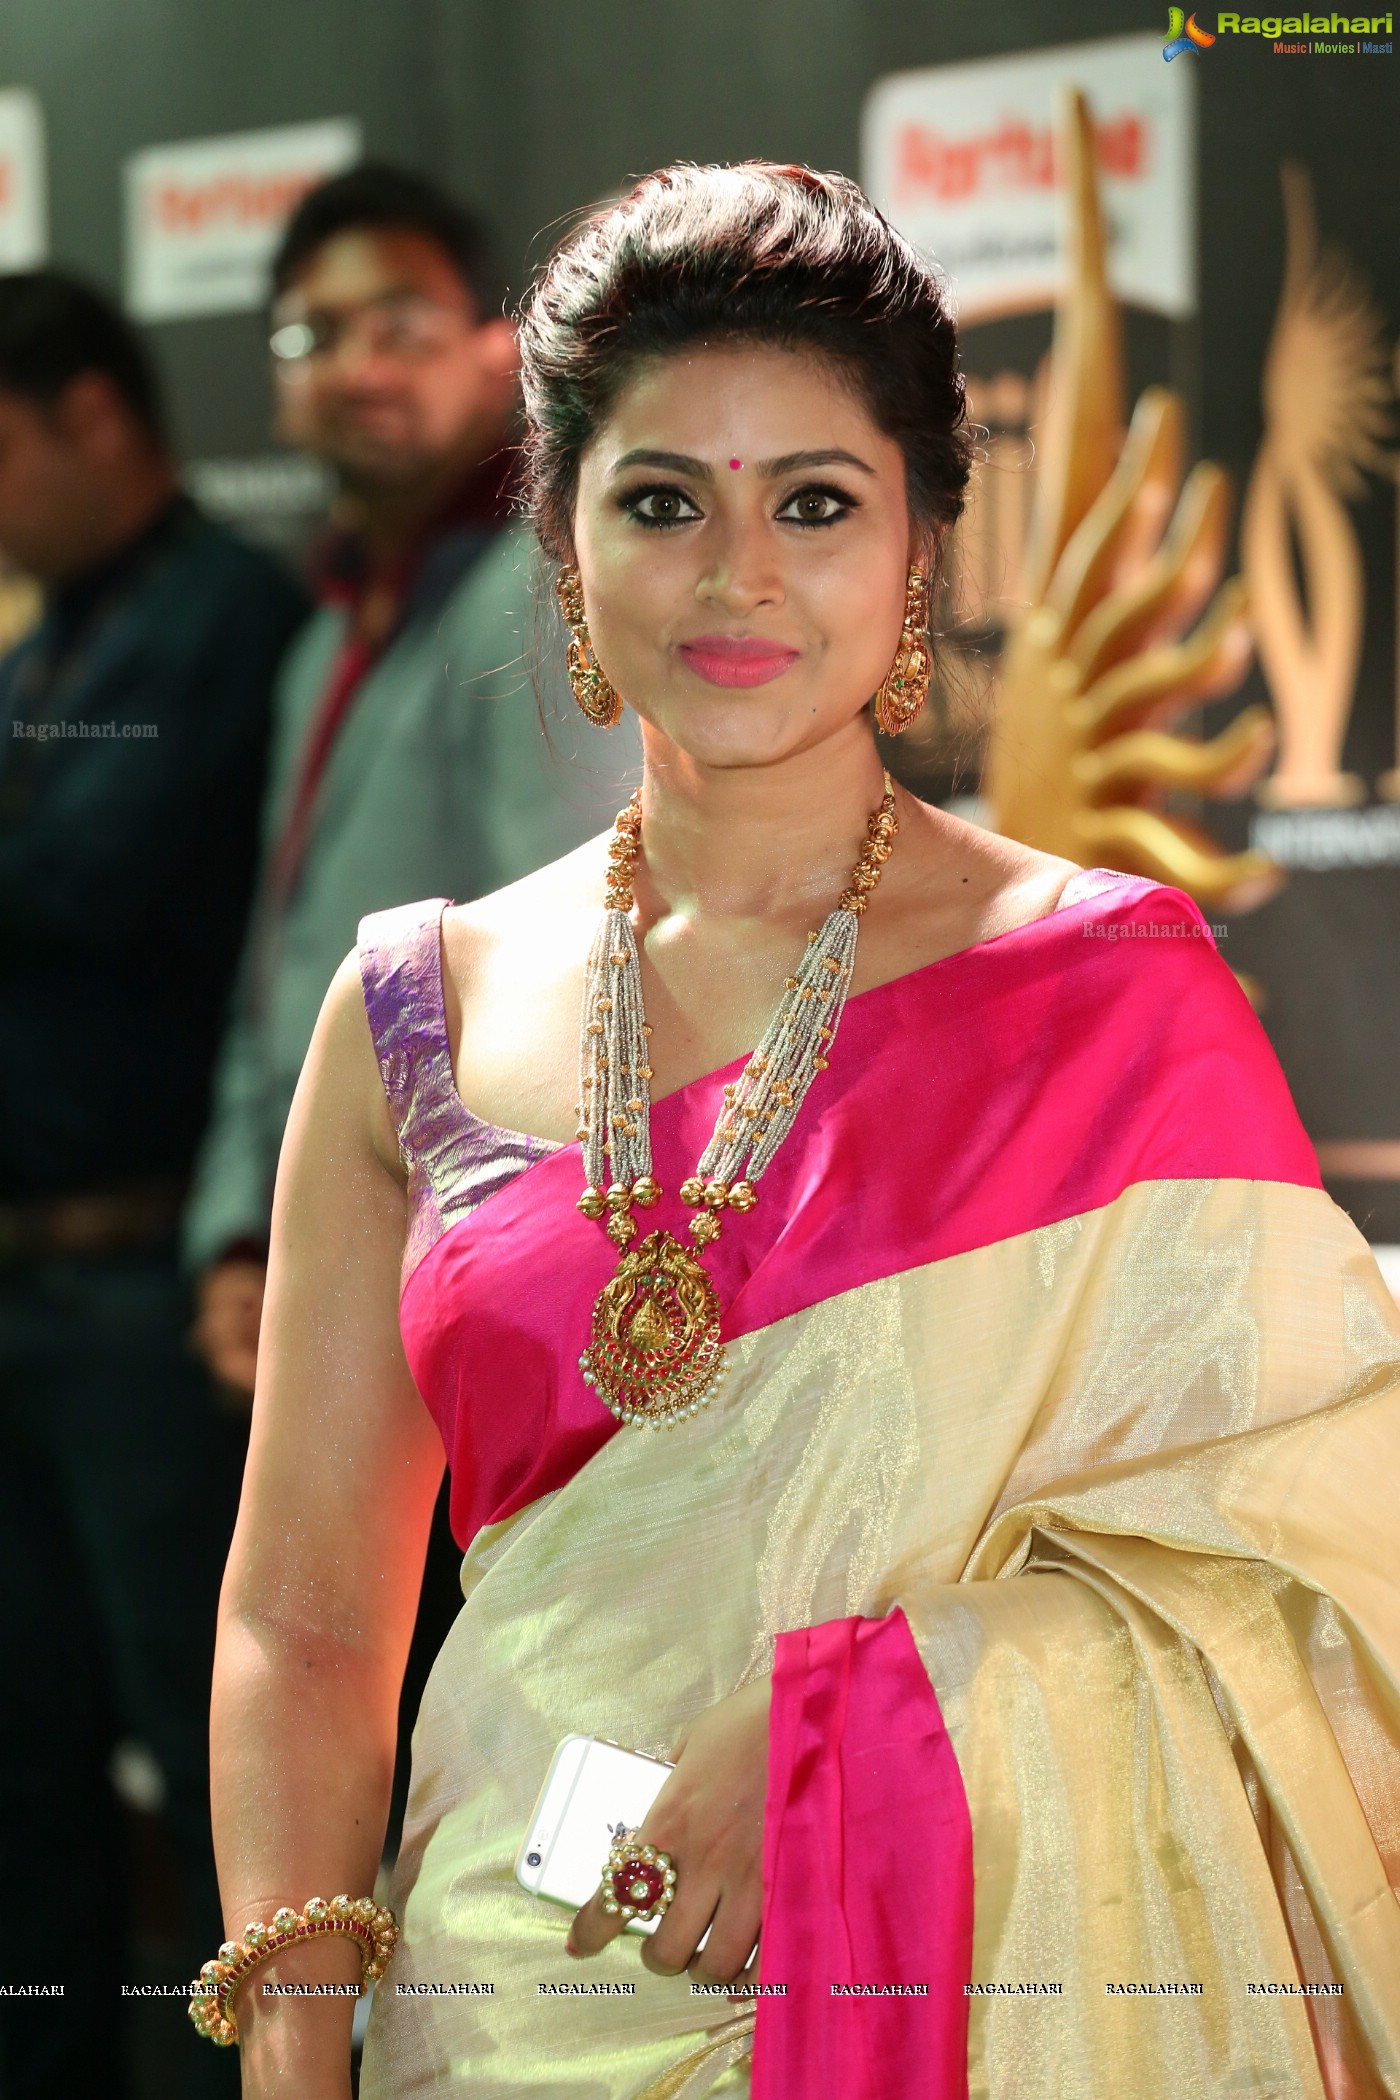 Sneha And Prasanna Posters Image 5003 Latest Actress